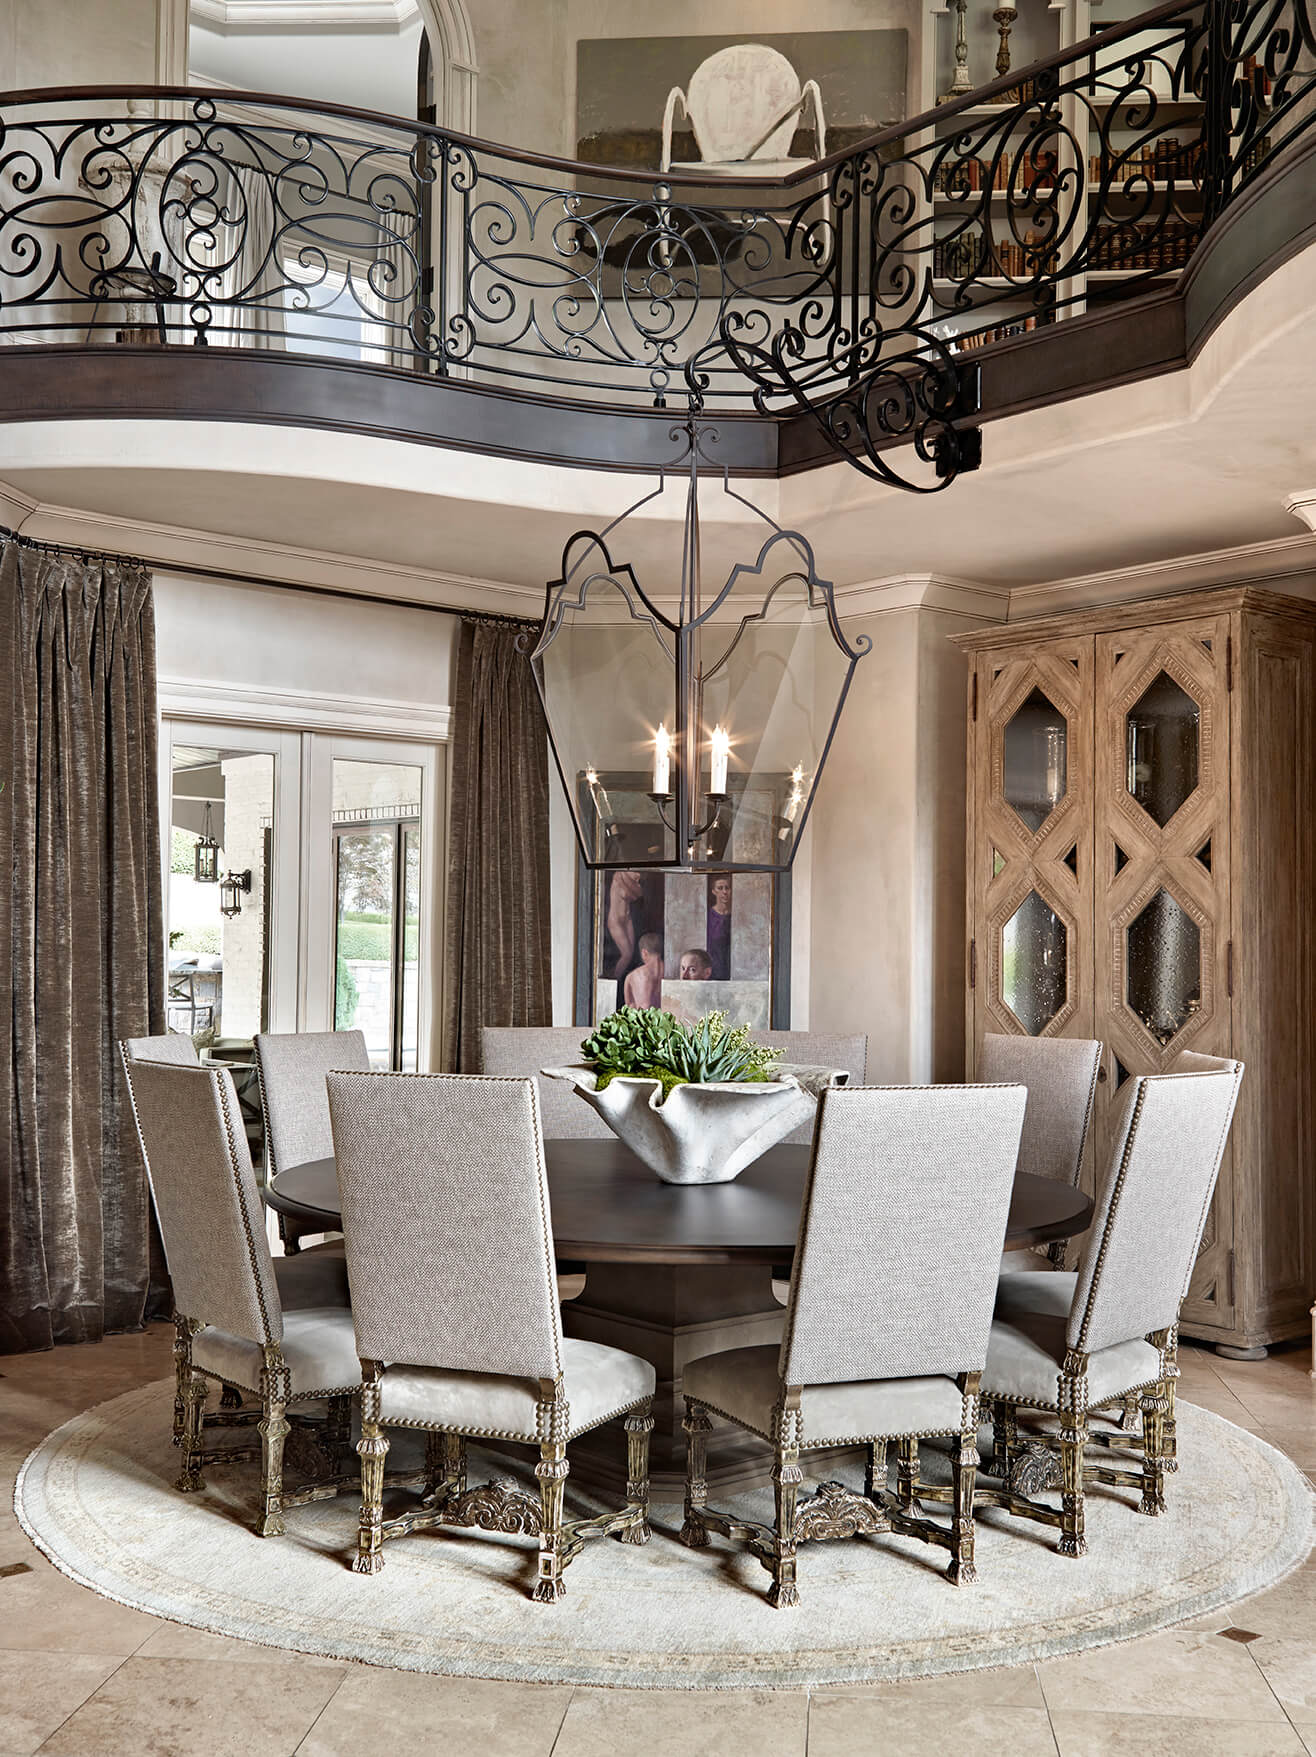 round-formal-dining-room-table-below-balcony-formal-transitional-bureau-interior-design-nashville-tn.jpg